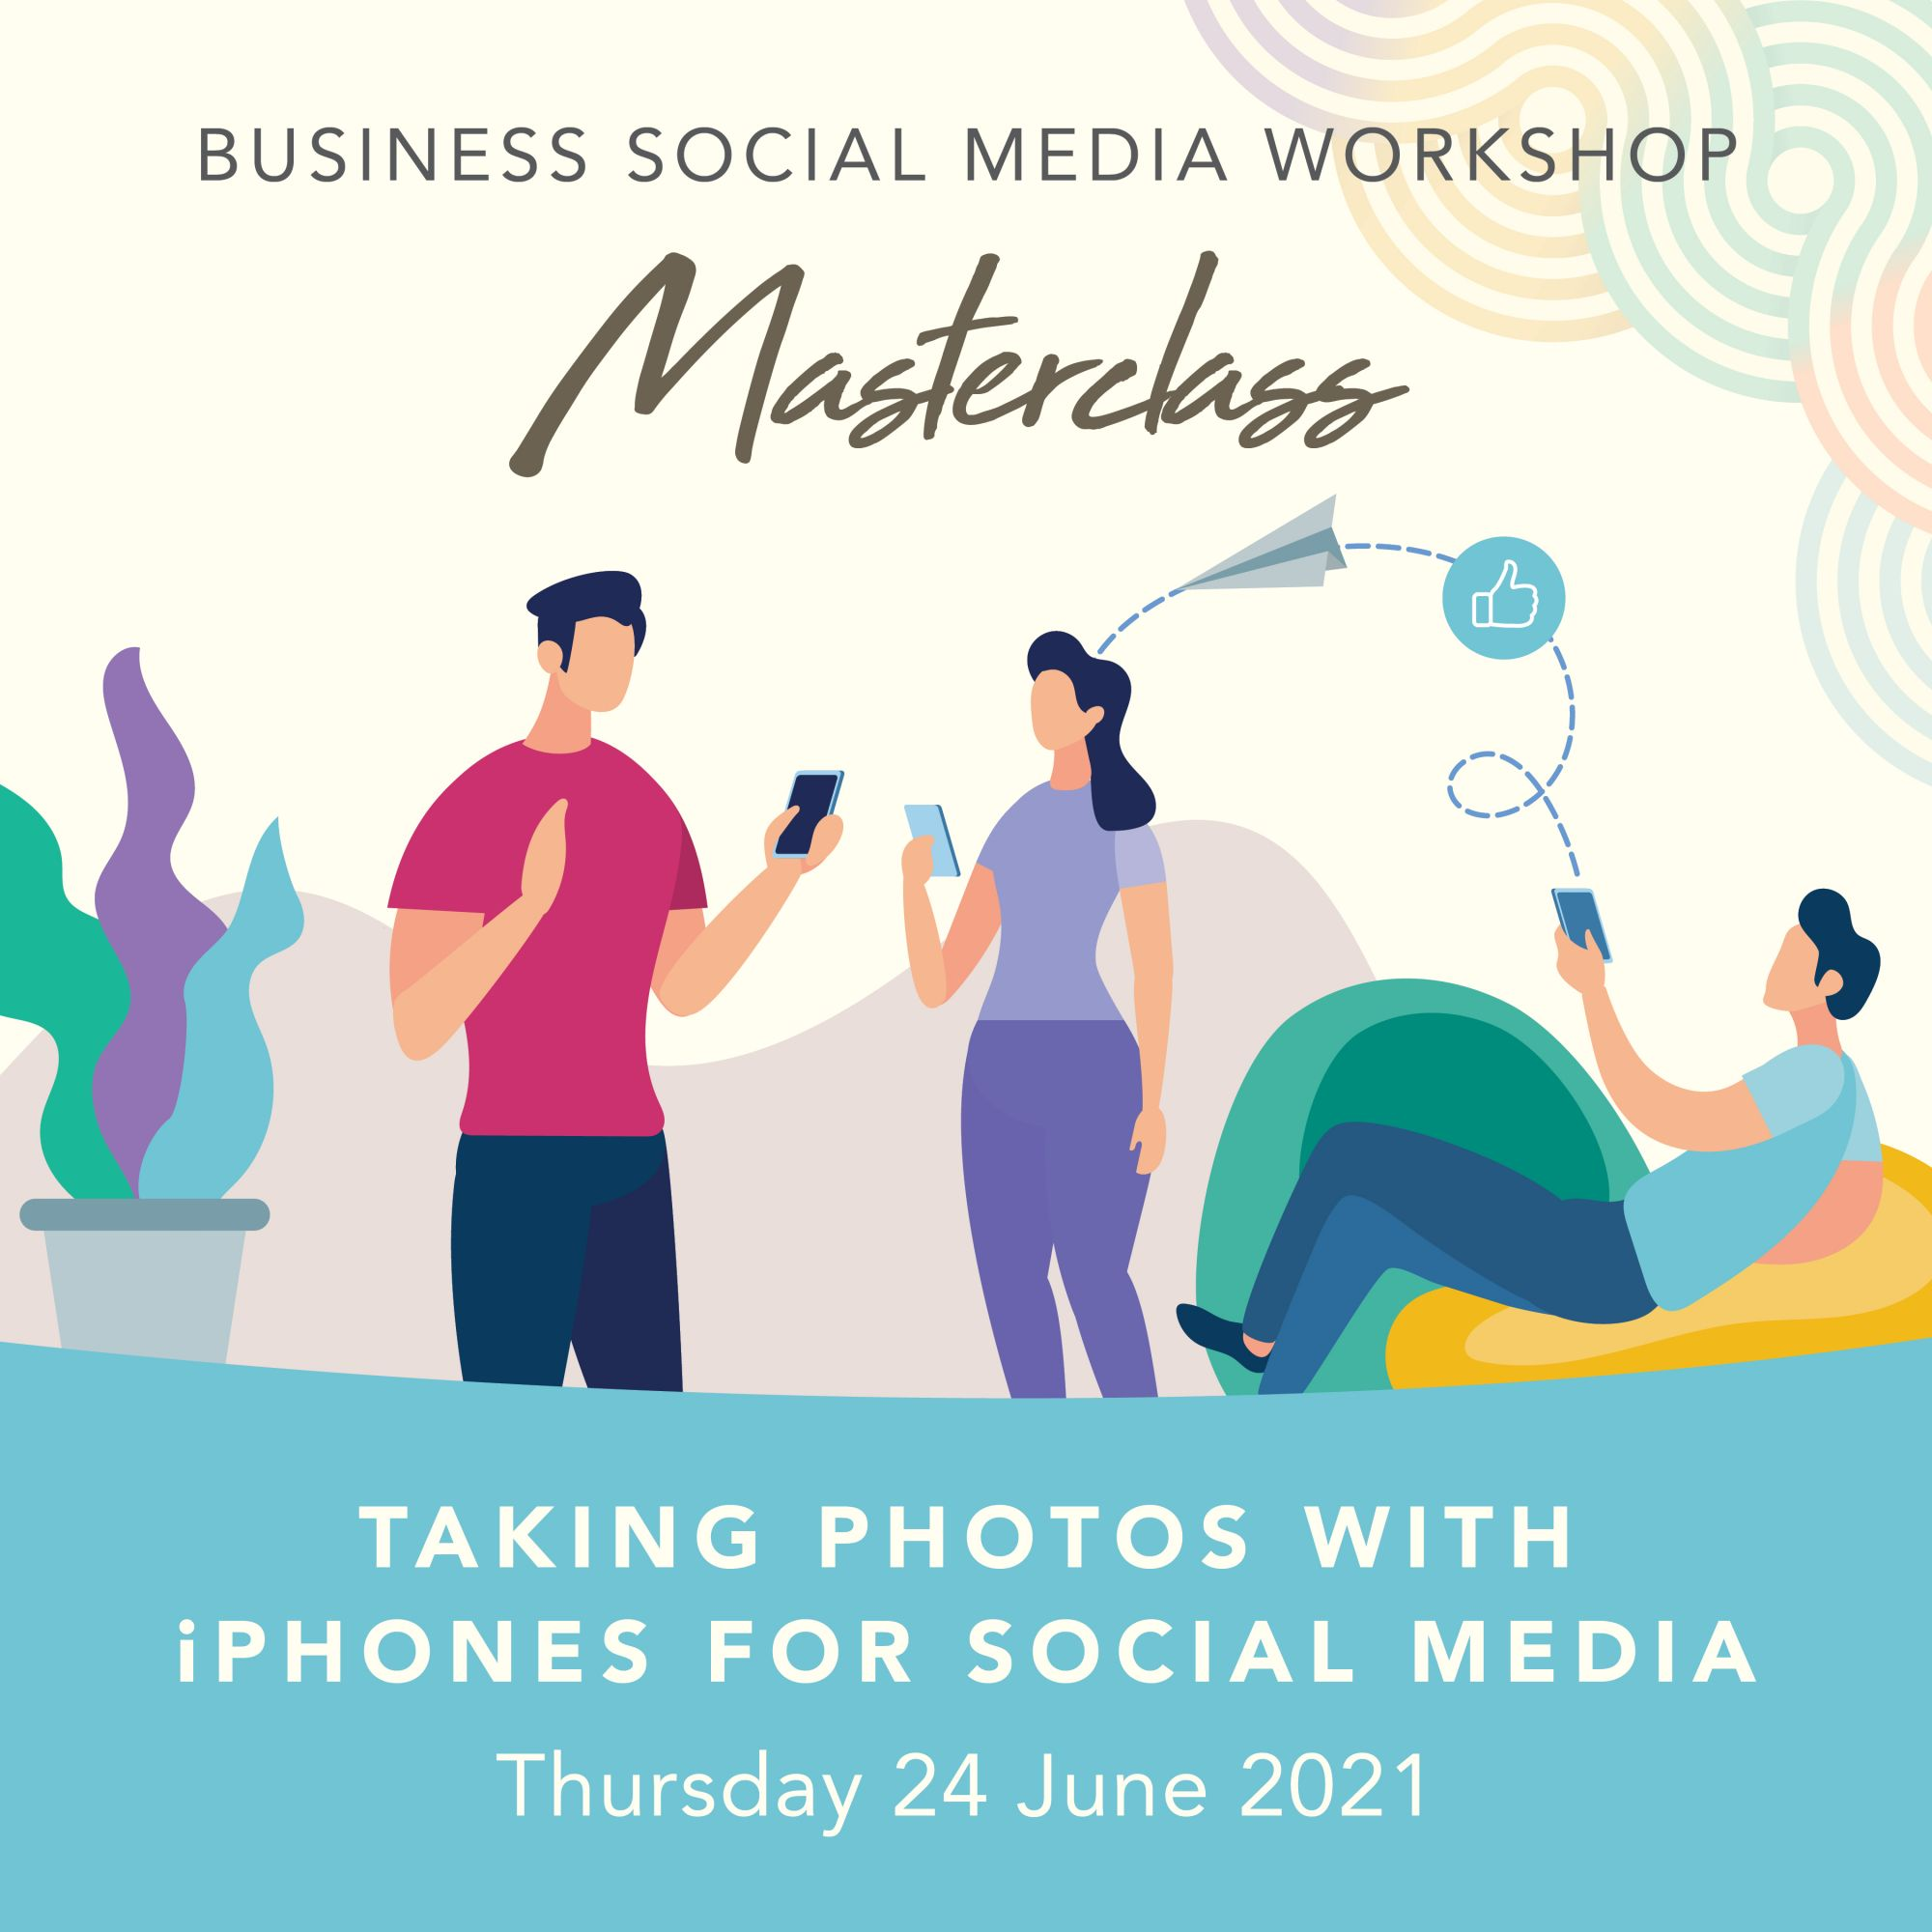 Business Workshop: Taking Photos With iPhones For Social Media